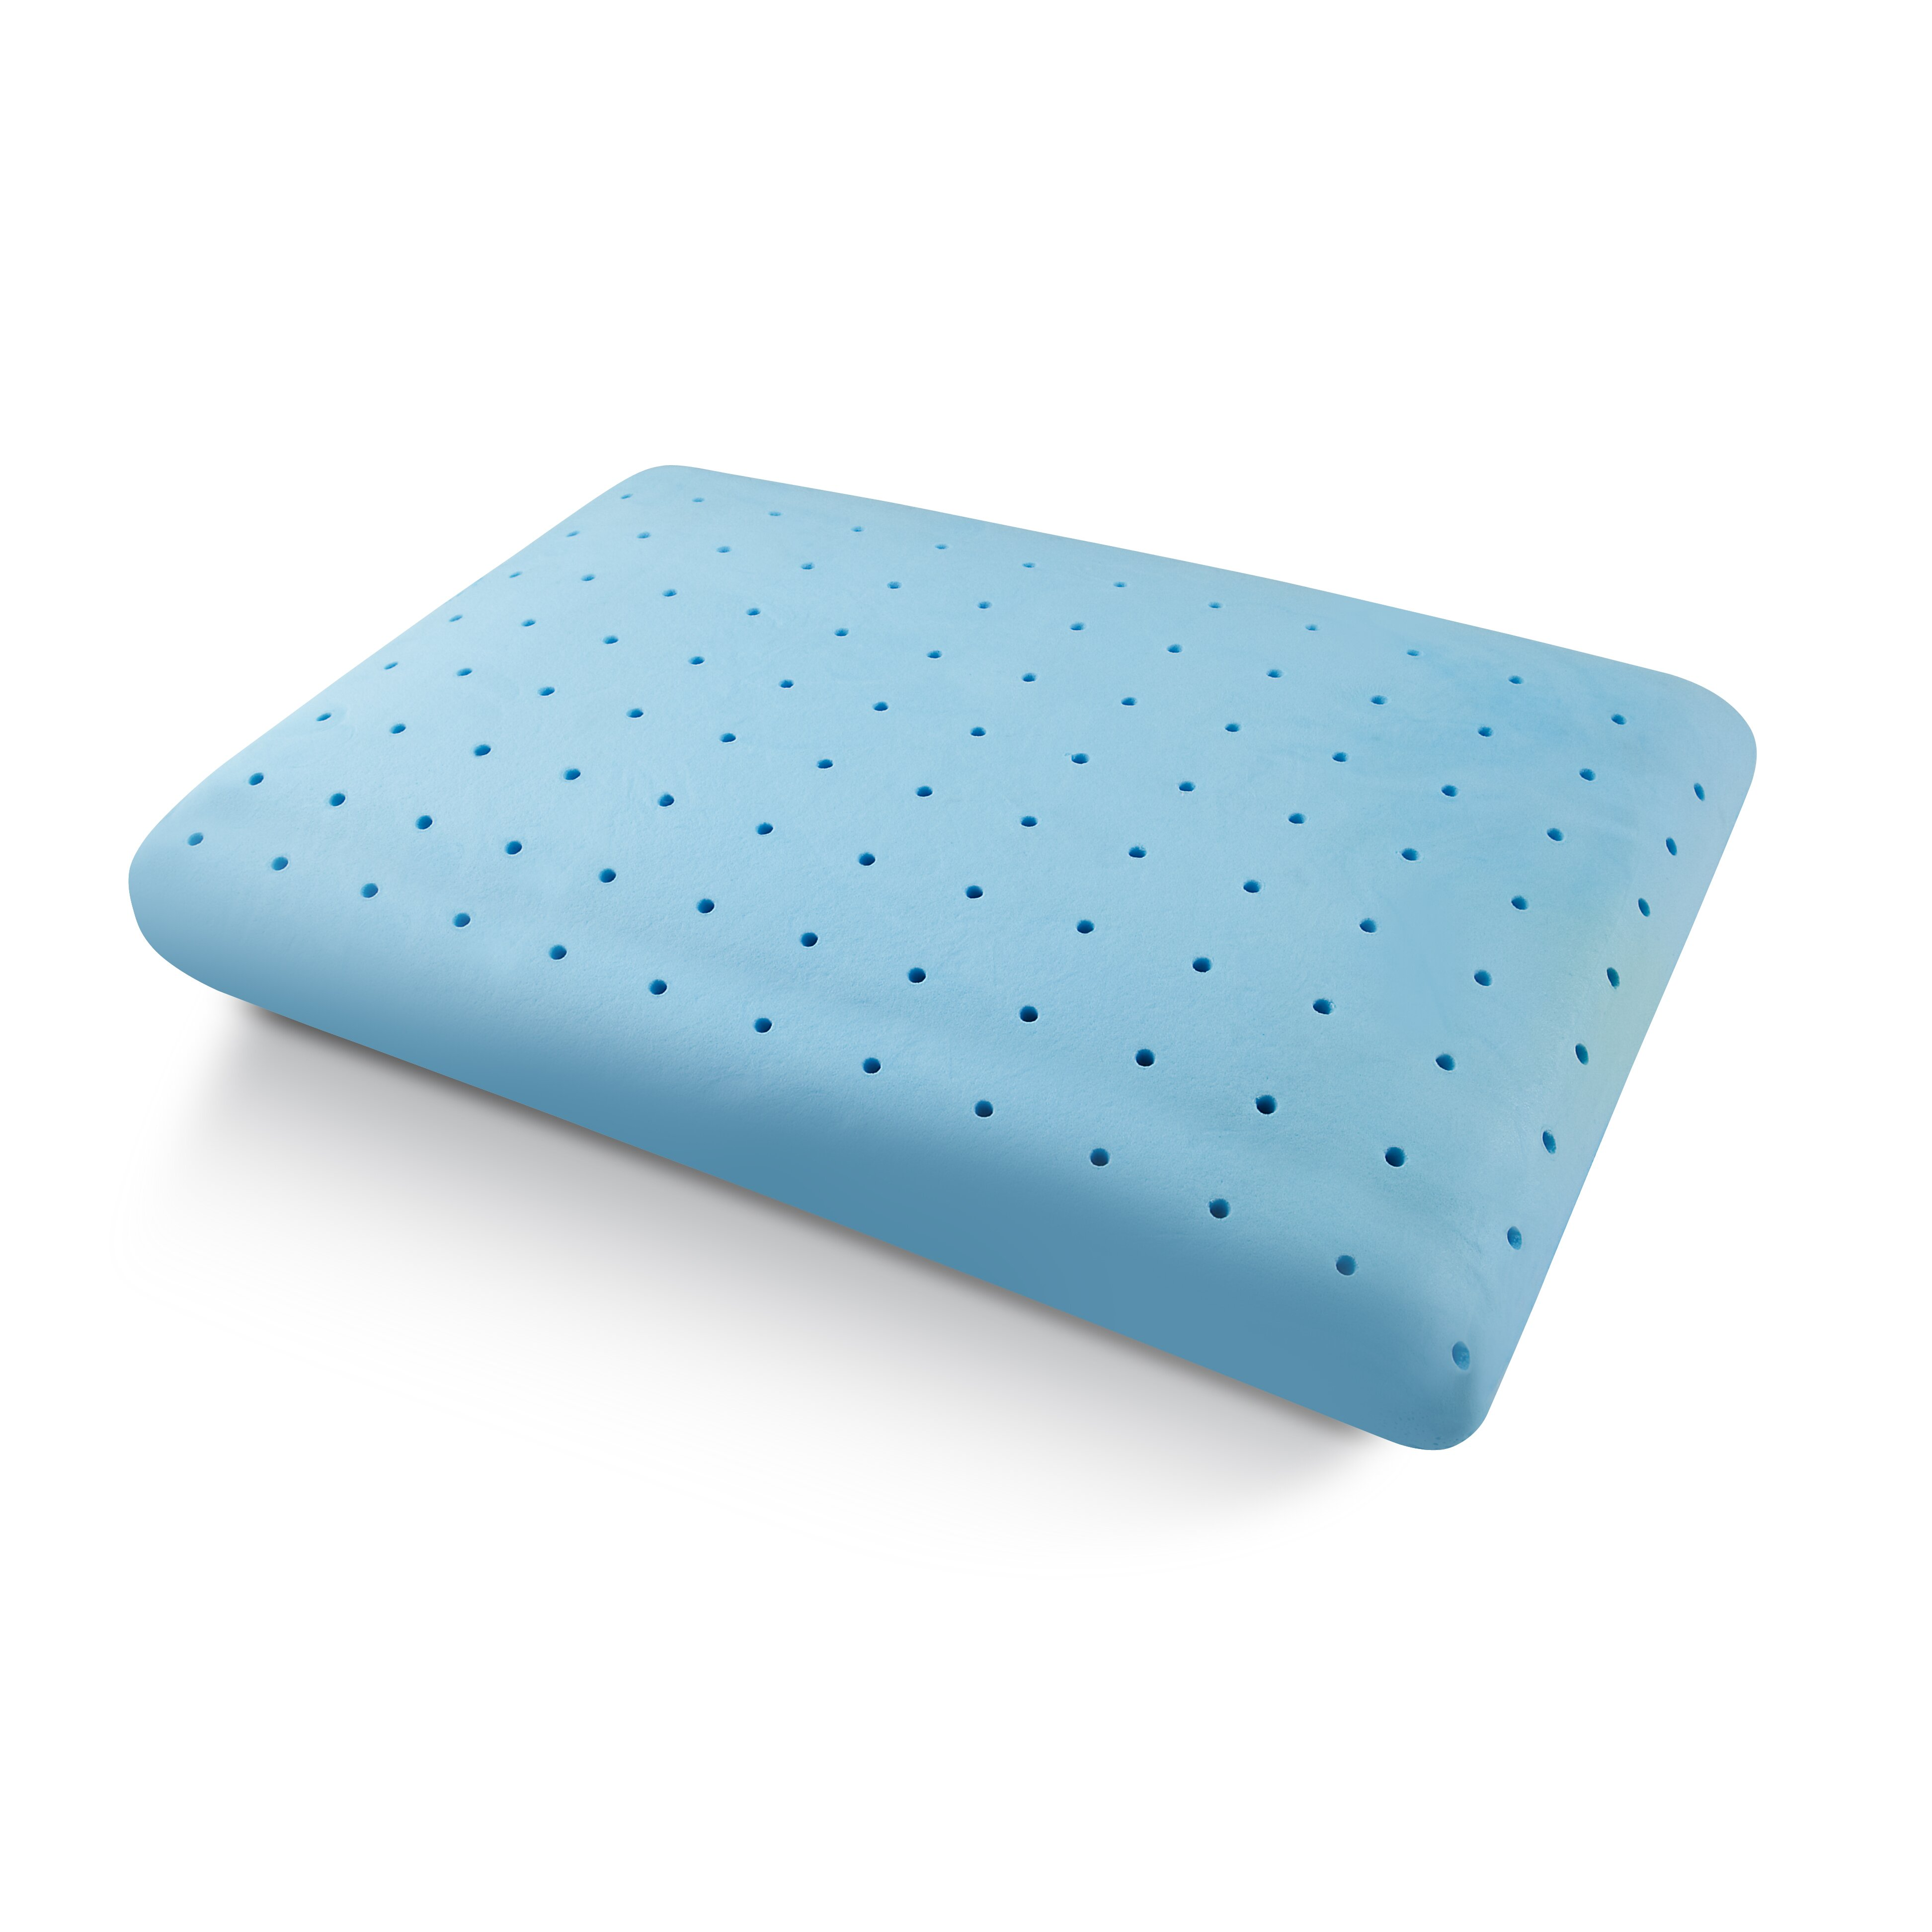 Pure Rest Big And Soft Cooling Gel Ventilated Memory Foam